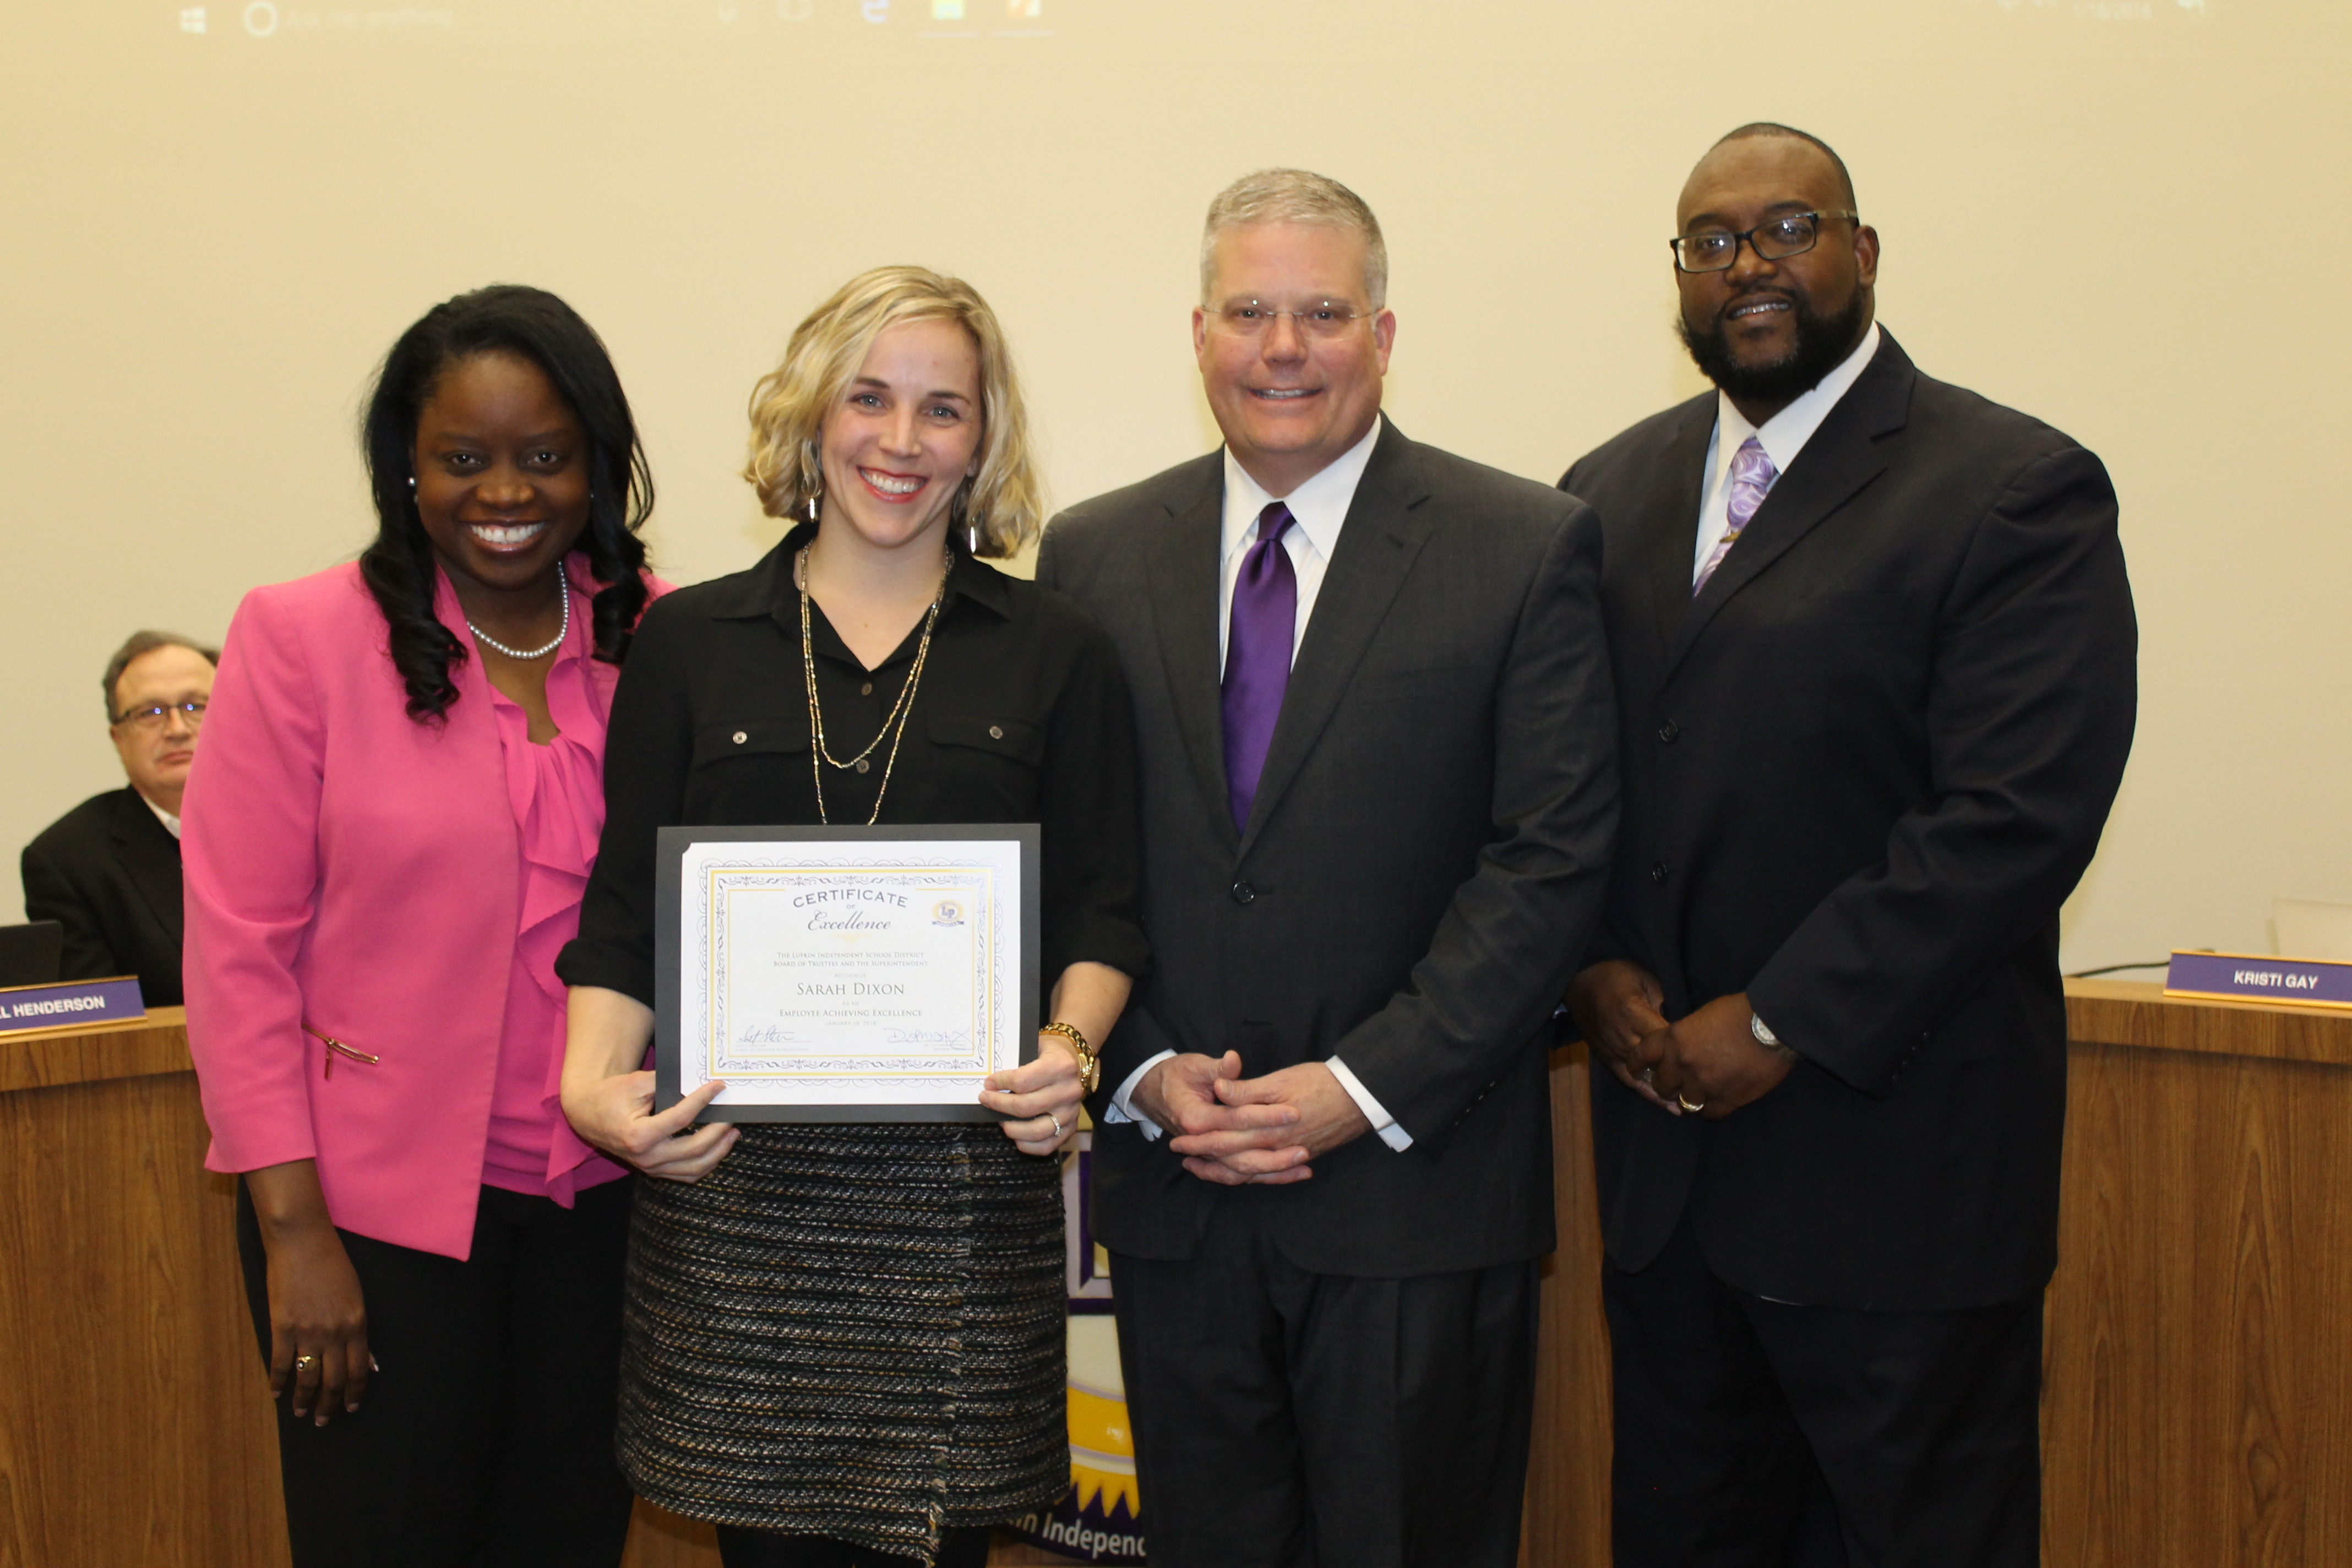 Primary teacher receives national board certification lufkin isd pictured from left superintendent dr goffney sarah dixon board president scott skelton board vice president andro branch 1betcityfo Gallery